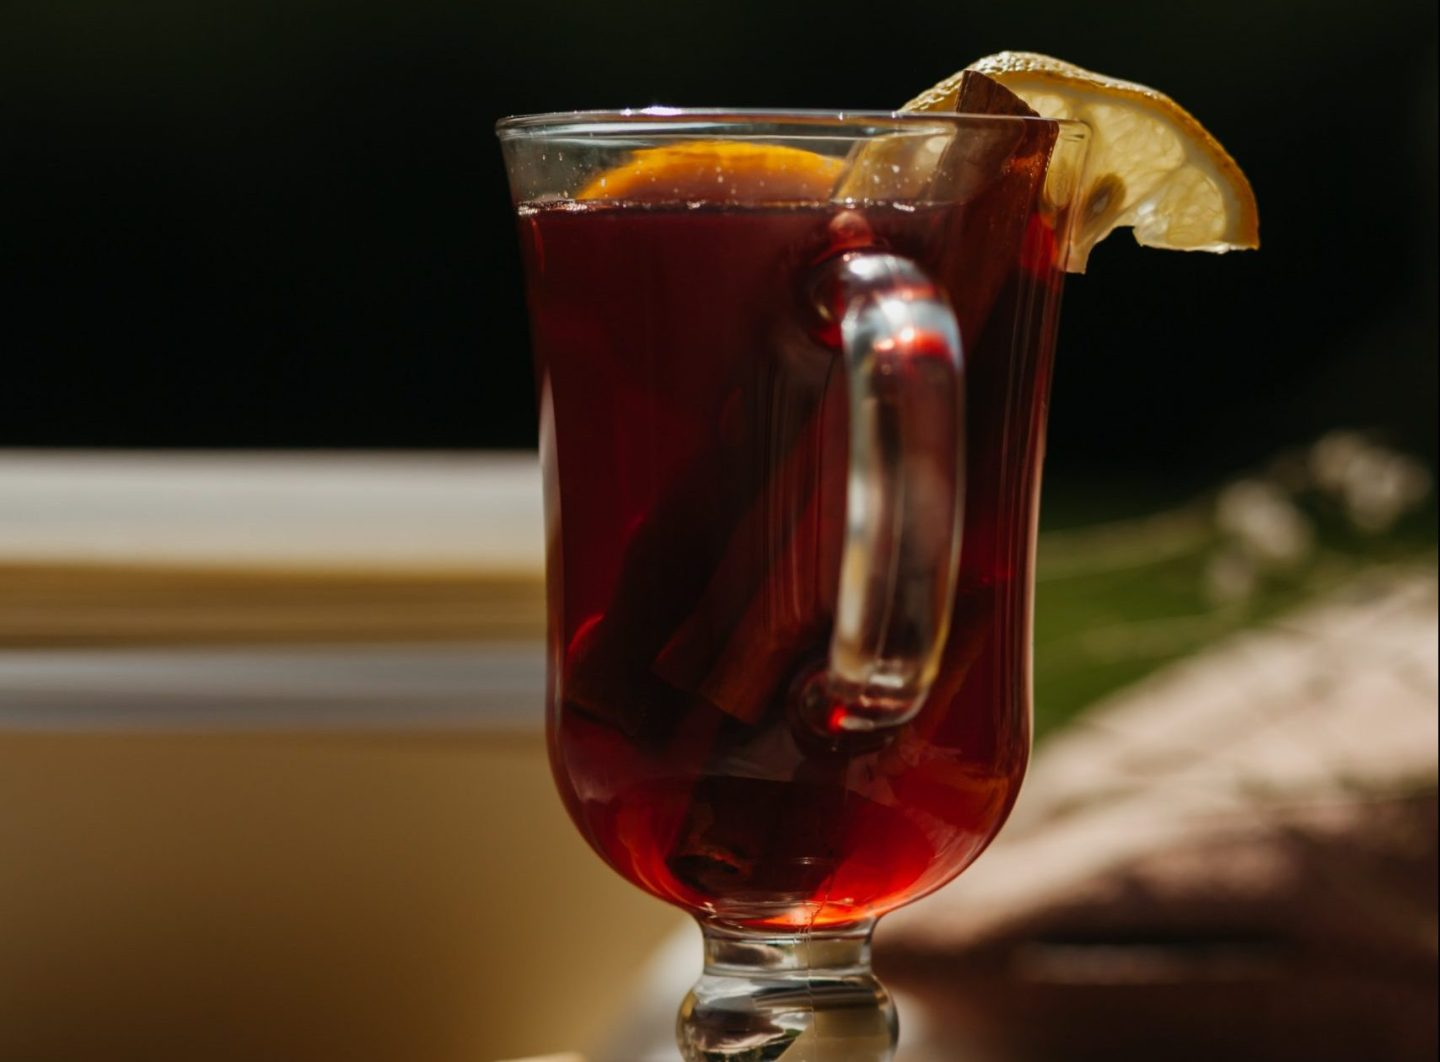 Recipe: Slow Cooker Mulled Wine with Sloe Gin